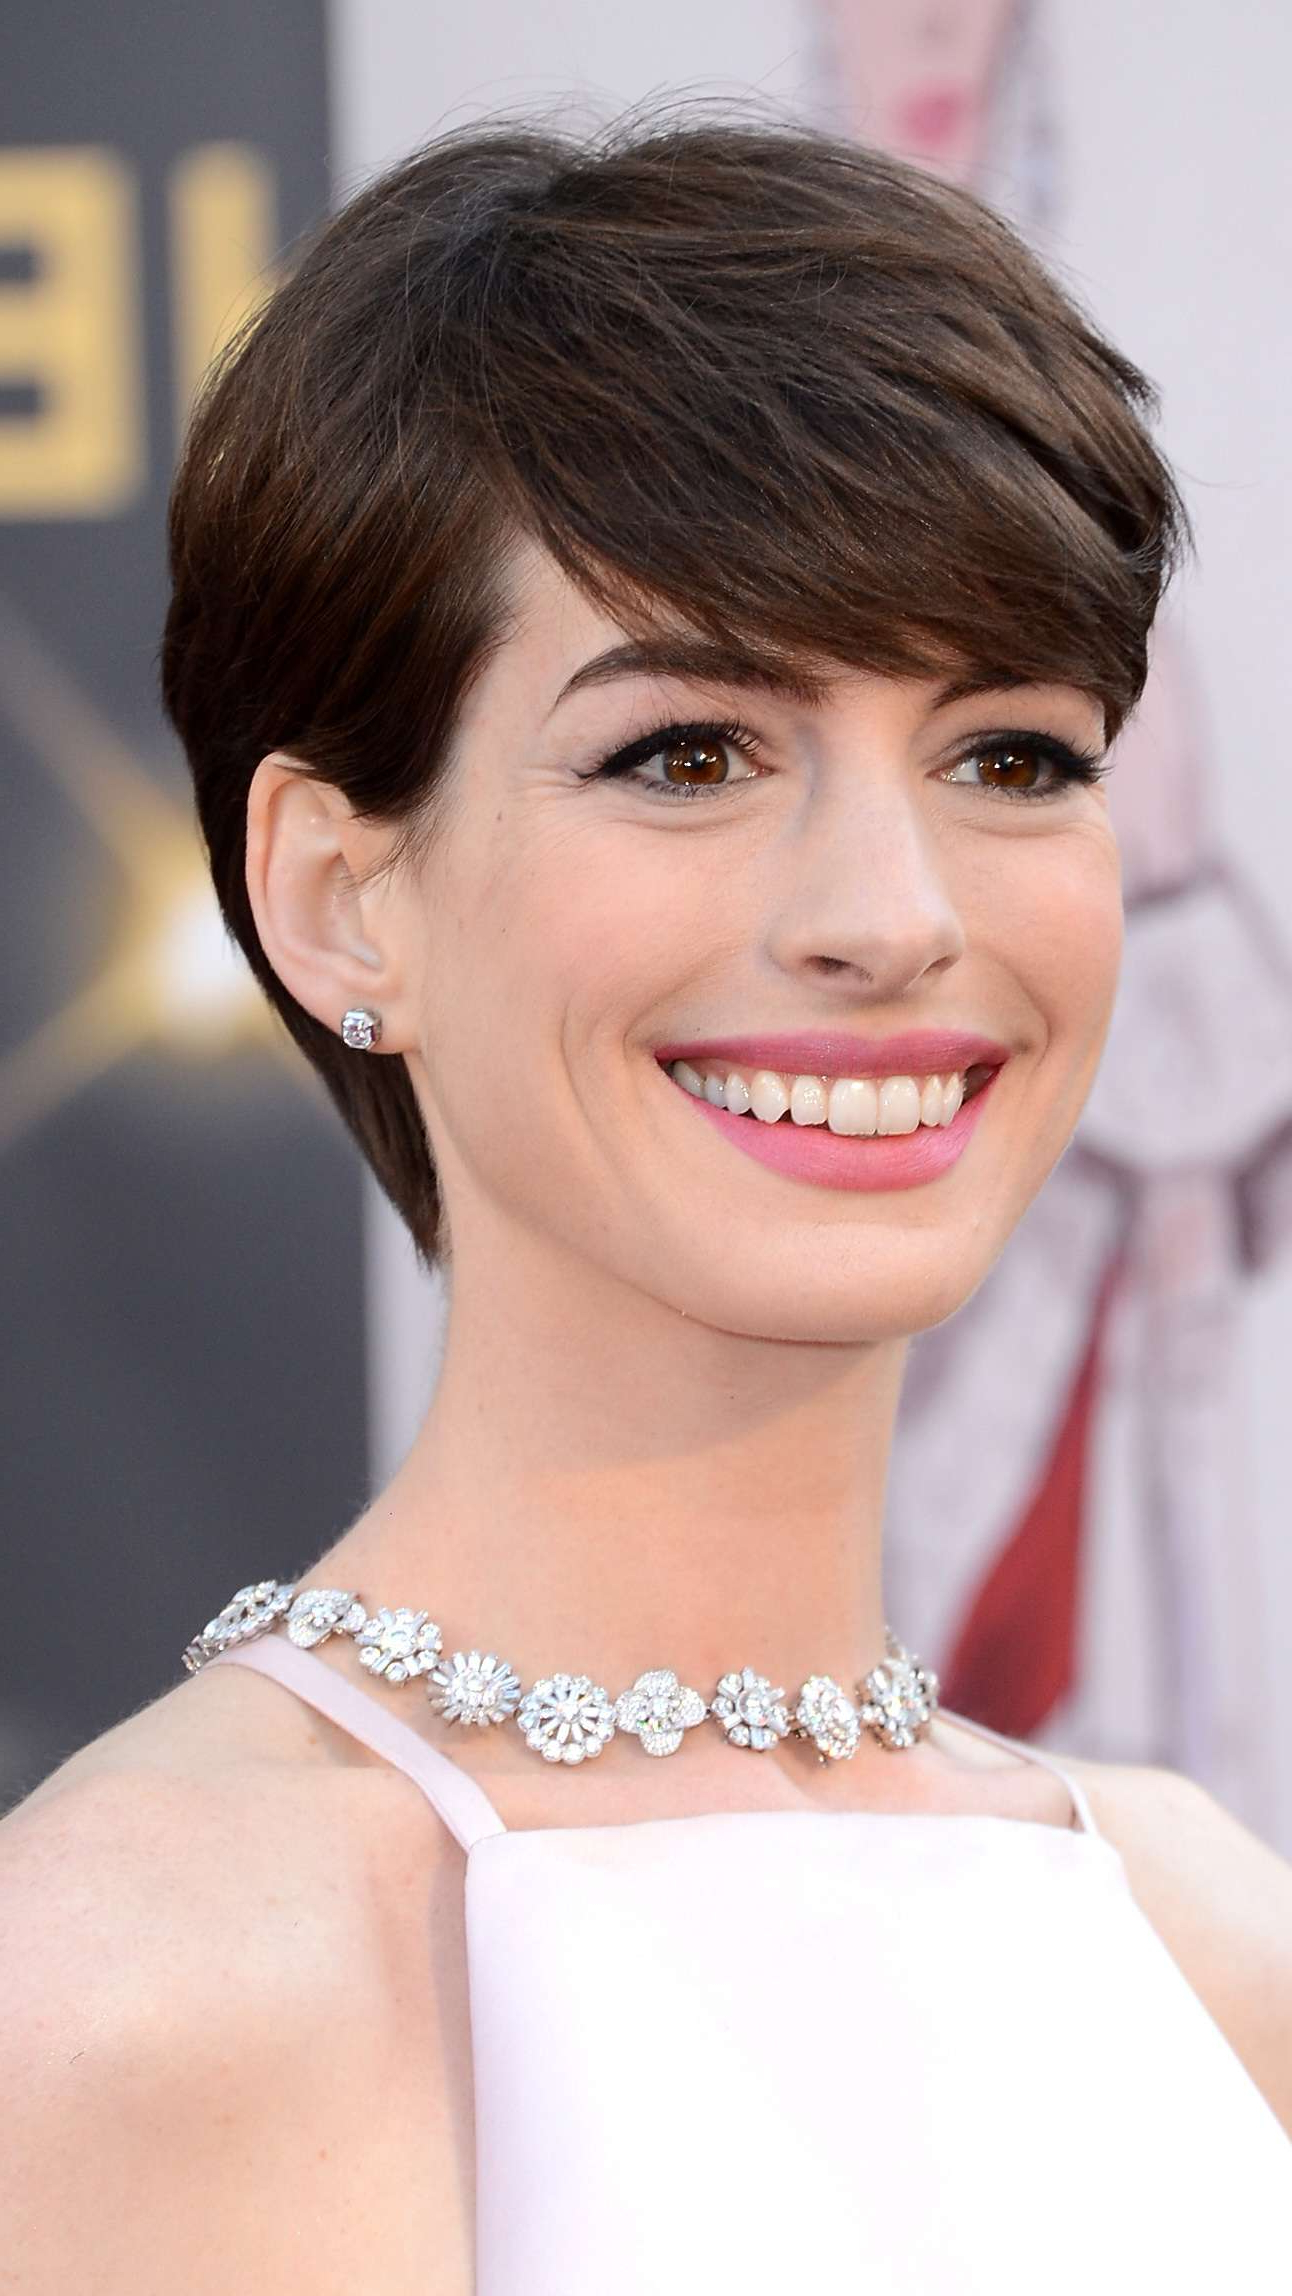 22 Inspiring Short Haircuts For Every Face Shape Inside Short Haircuts For Square Face (View 2 of 25)